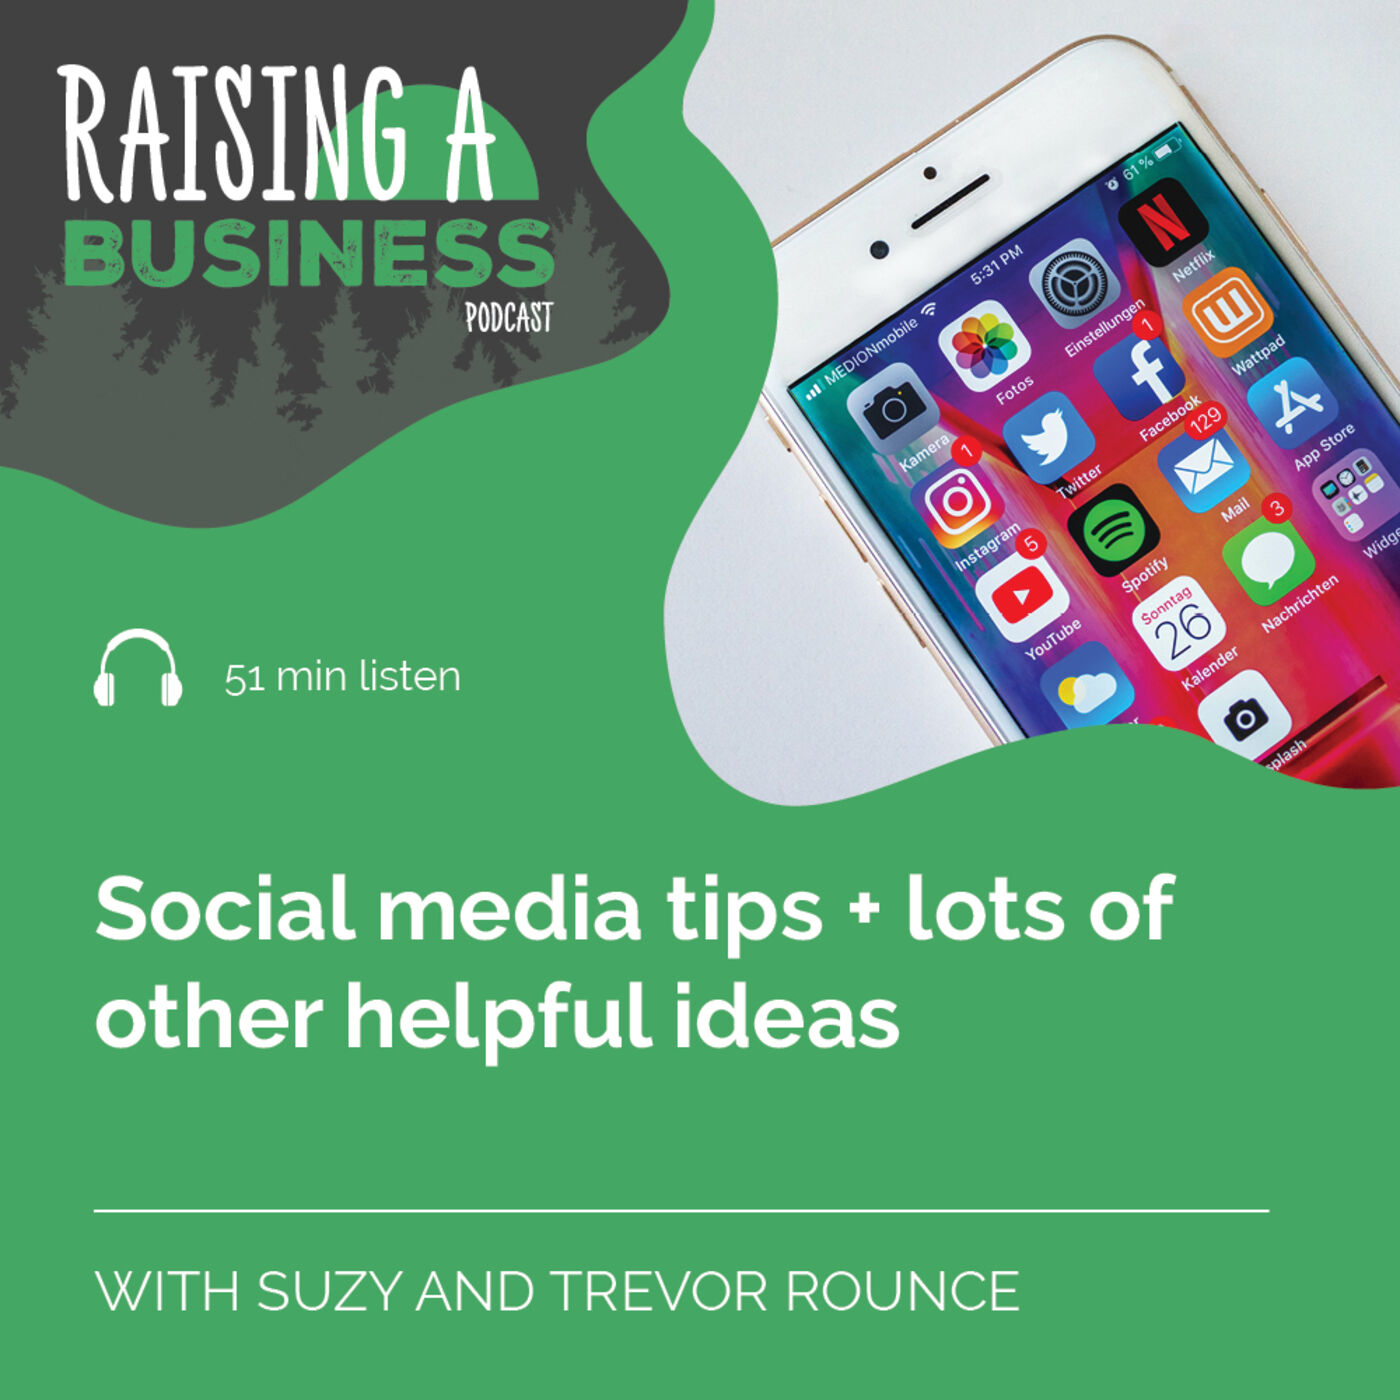 RAB 027 Social media tips + lots of other helpful ideas